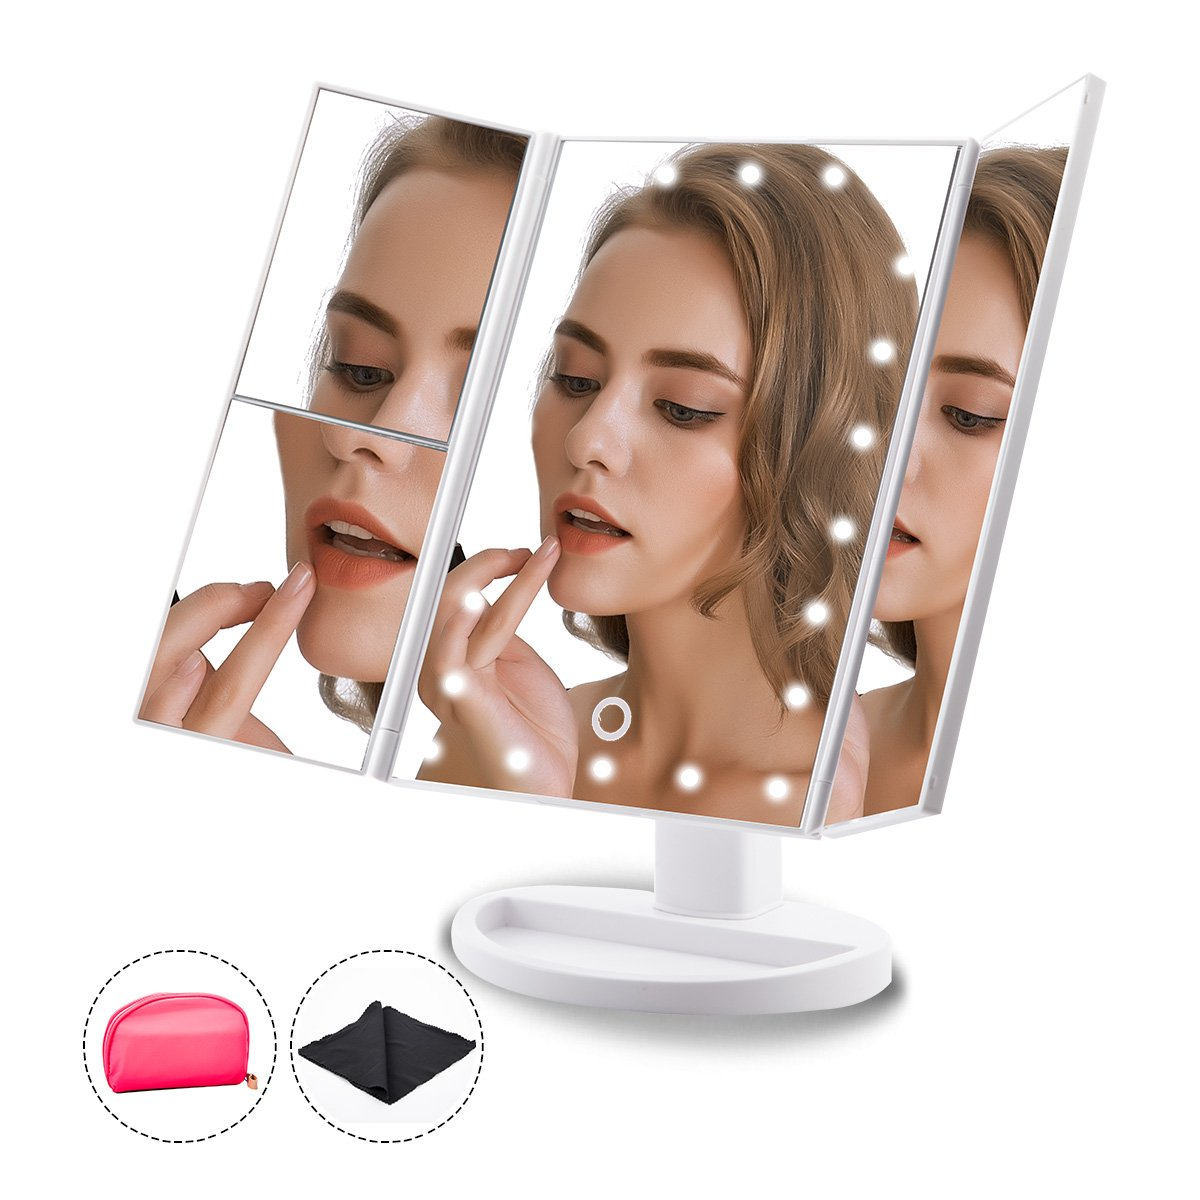 Makeup Mirror Trifold 22 Led Lighted with Touch Screen, Travel Vanity Mirror, 1x/2x/3x Magnification and Dual Power Supply, 180° Rotatable for Women Cosmetic Makeup by Toleap (White)